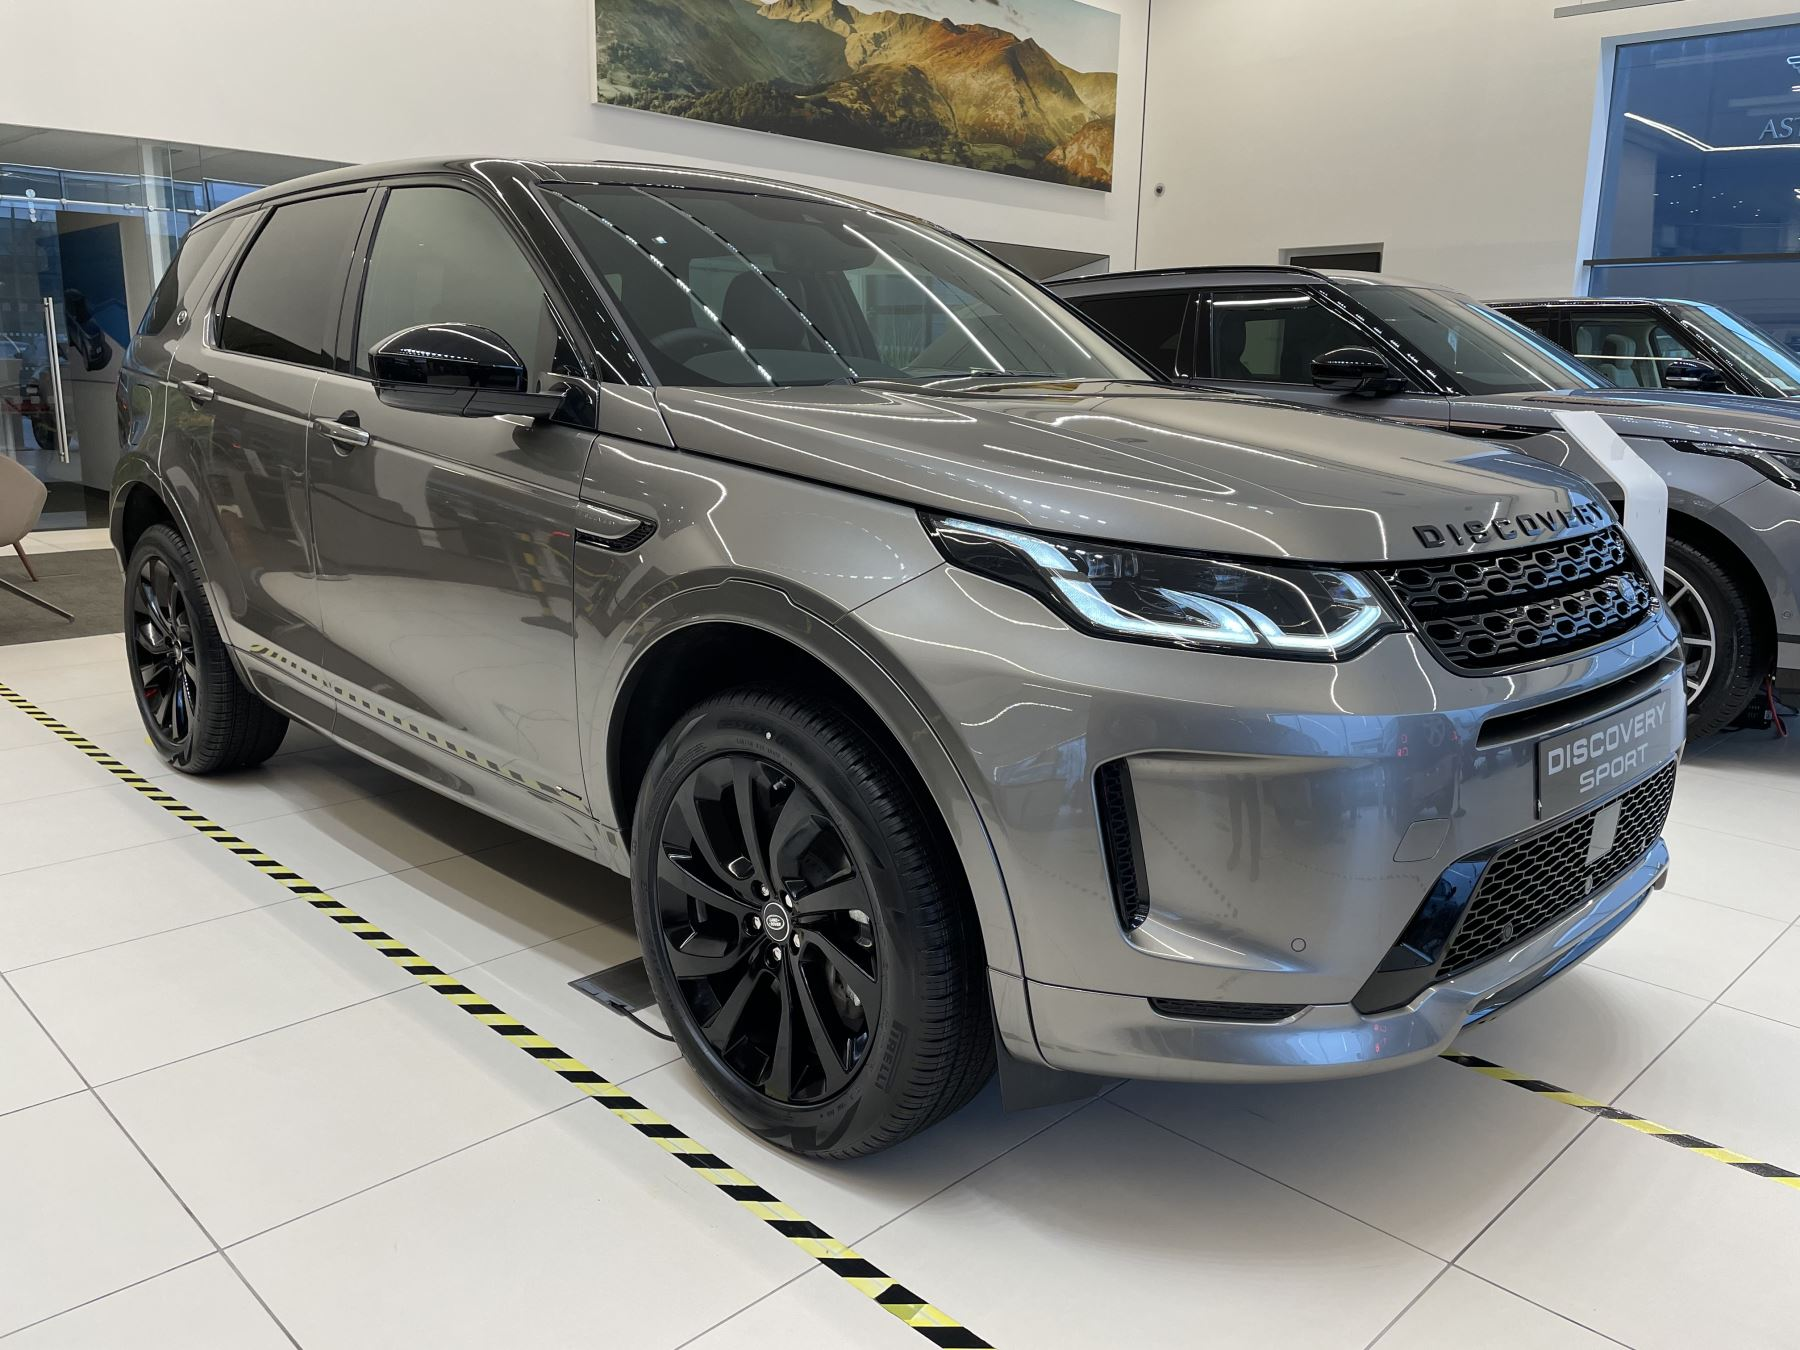 Land Rover Discovery Sport 2.0 P250 R-Dynamic HSE image 1